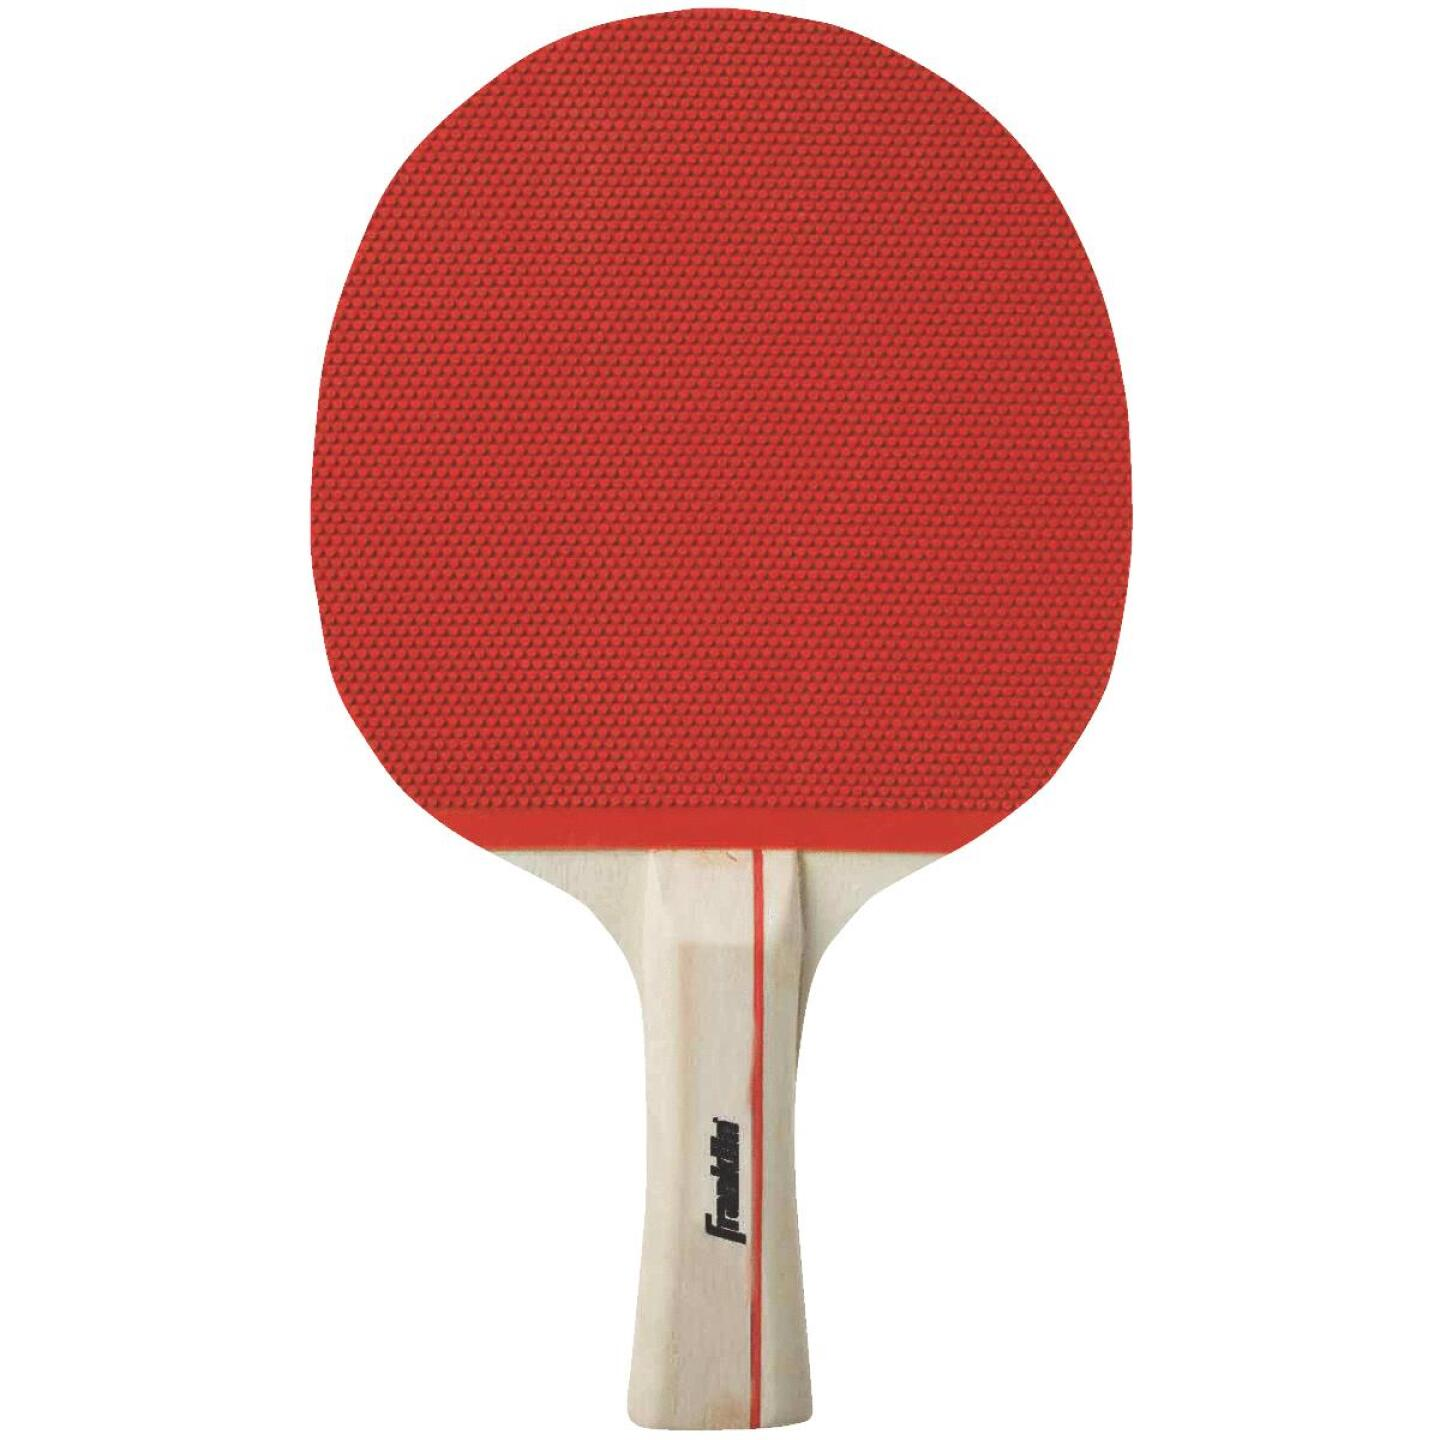 Franklin Straight Handle Rubber Face Table Tennis Paddle Image 1